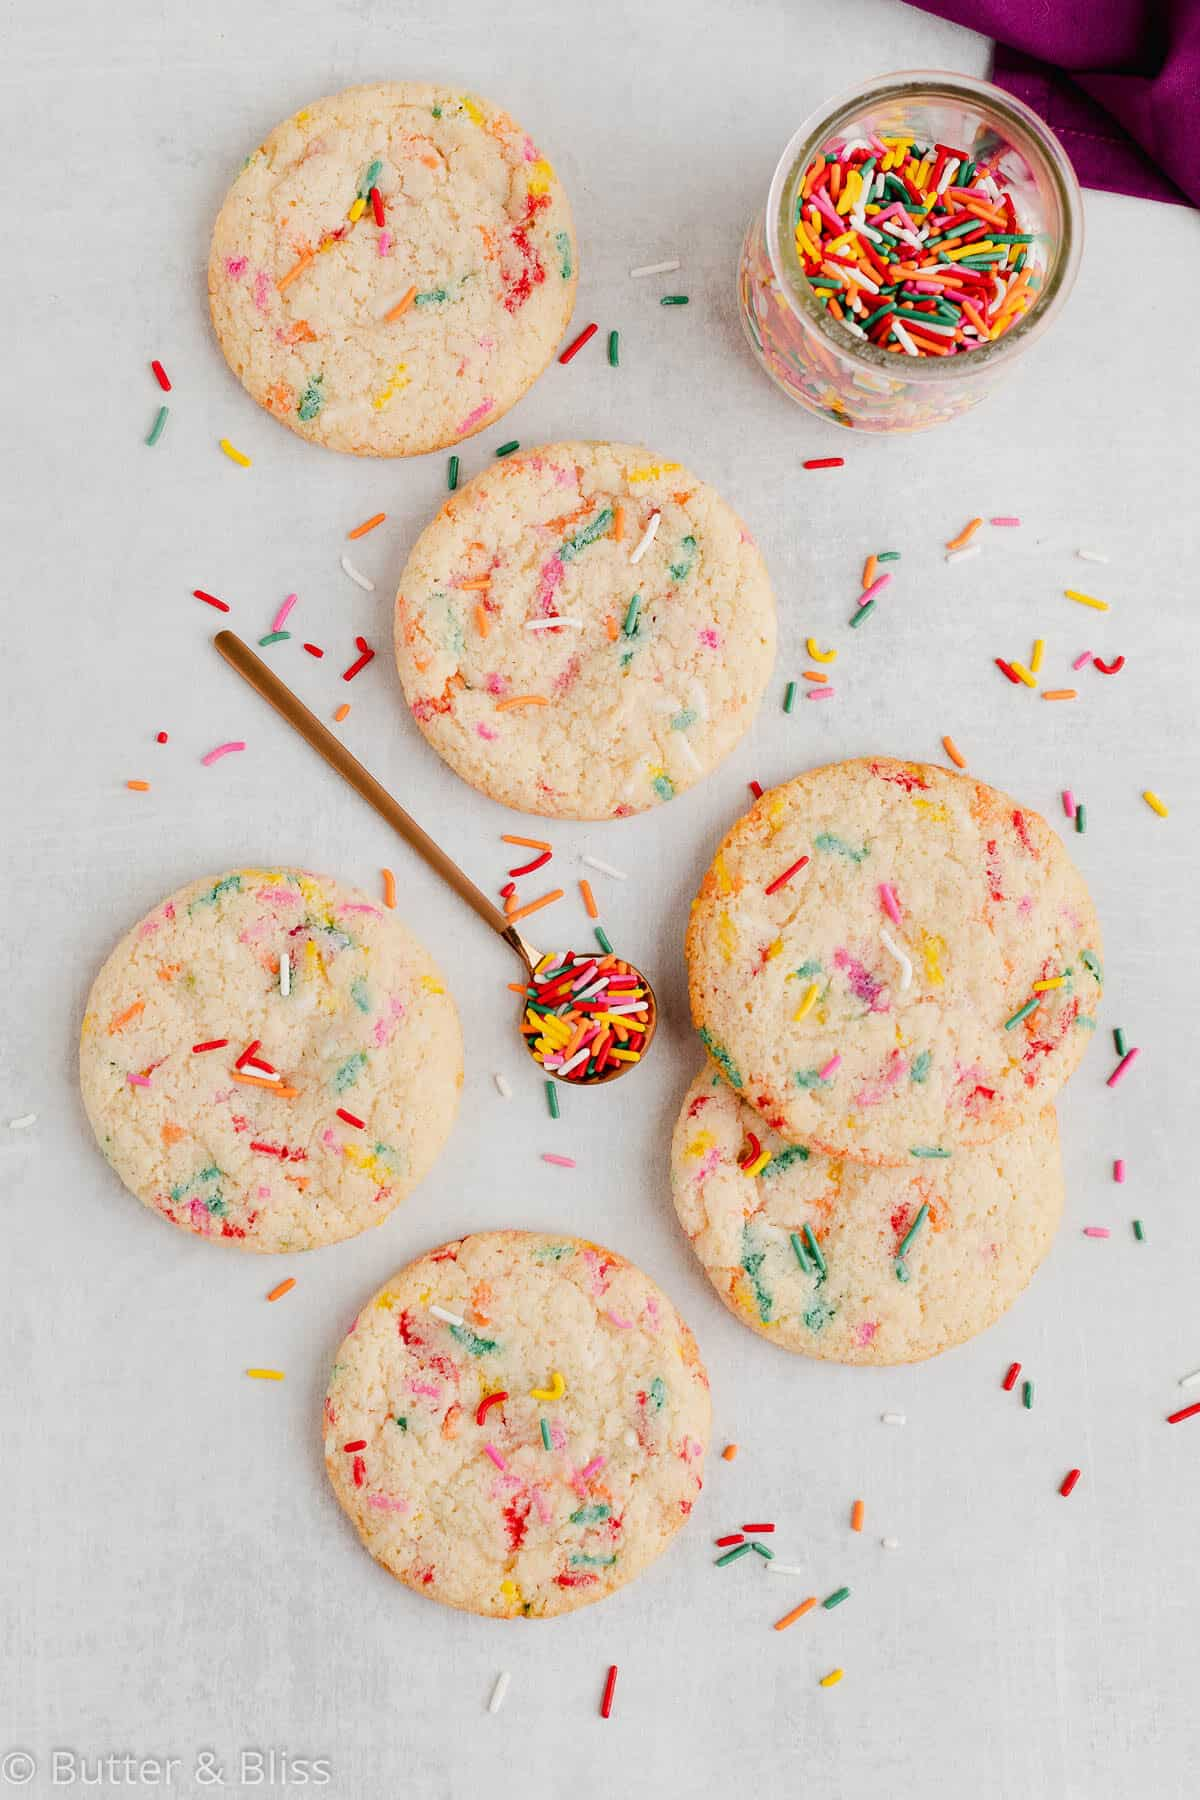 Small batch of gluten free sugar cookies from scratch on a table